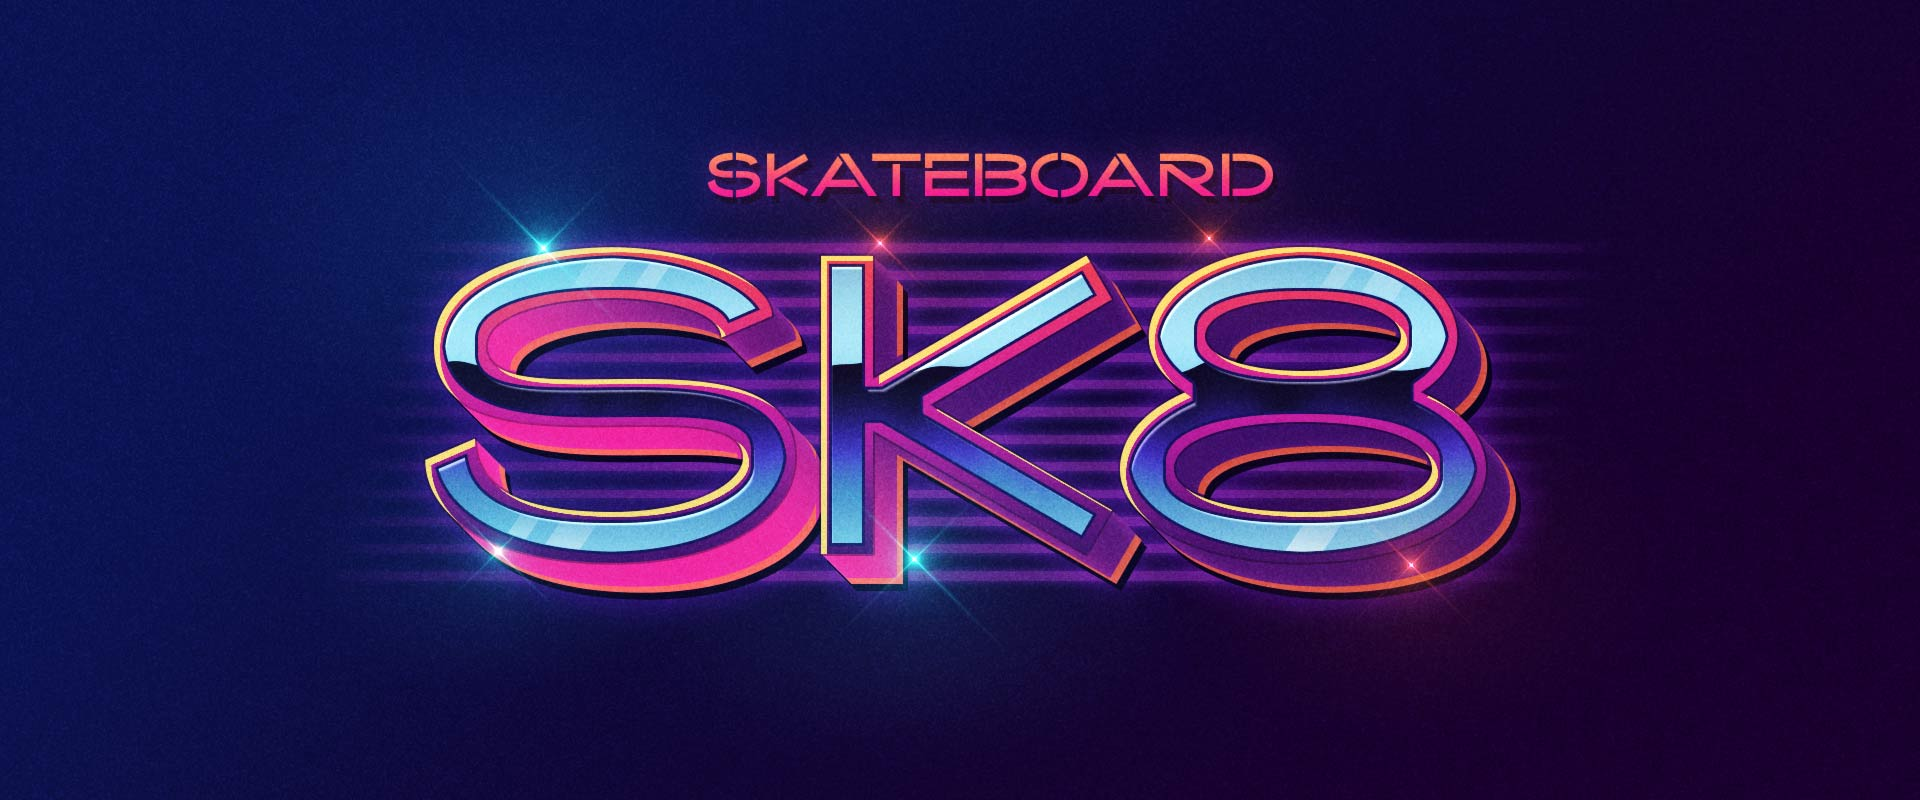 """SK8"" skate visuals with Kaito Sans in 80s style"